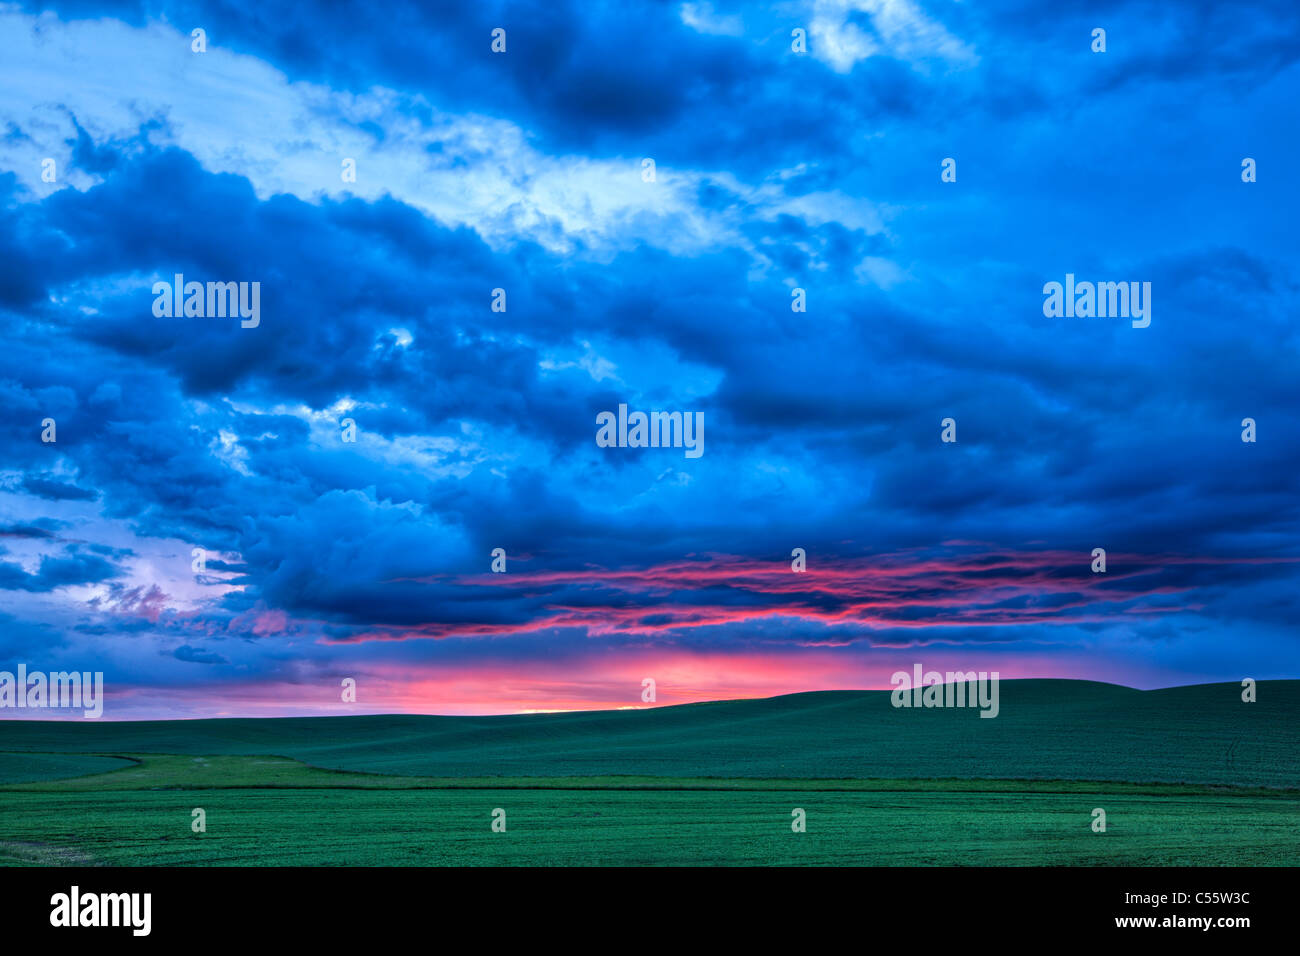 Nuages sur une ferme, Palouse, Washington State, USA Photo Stock